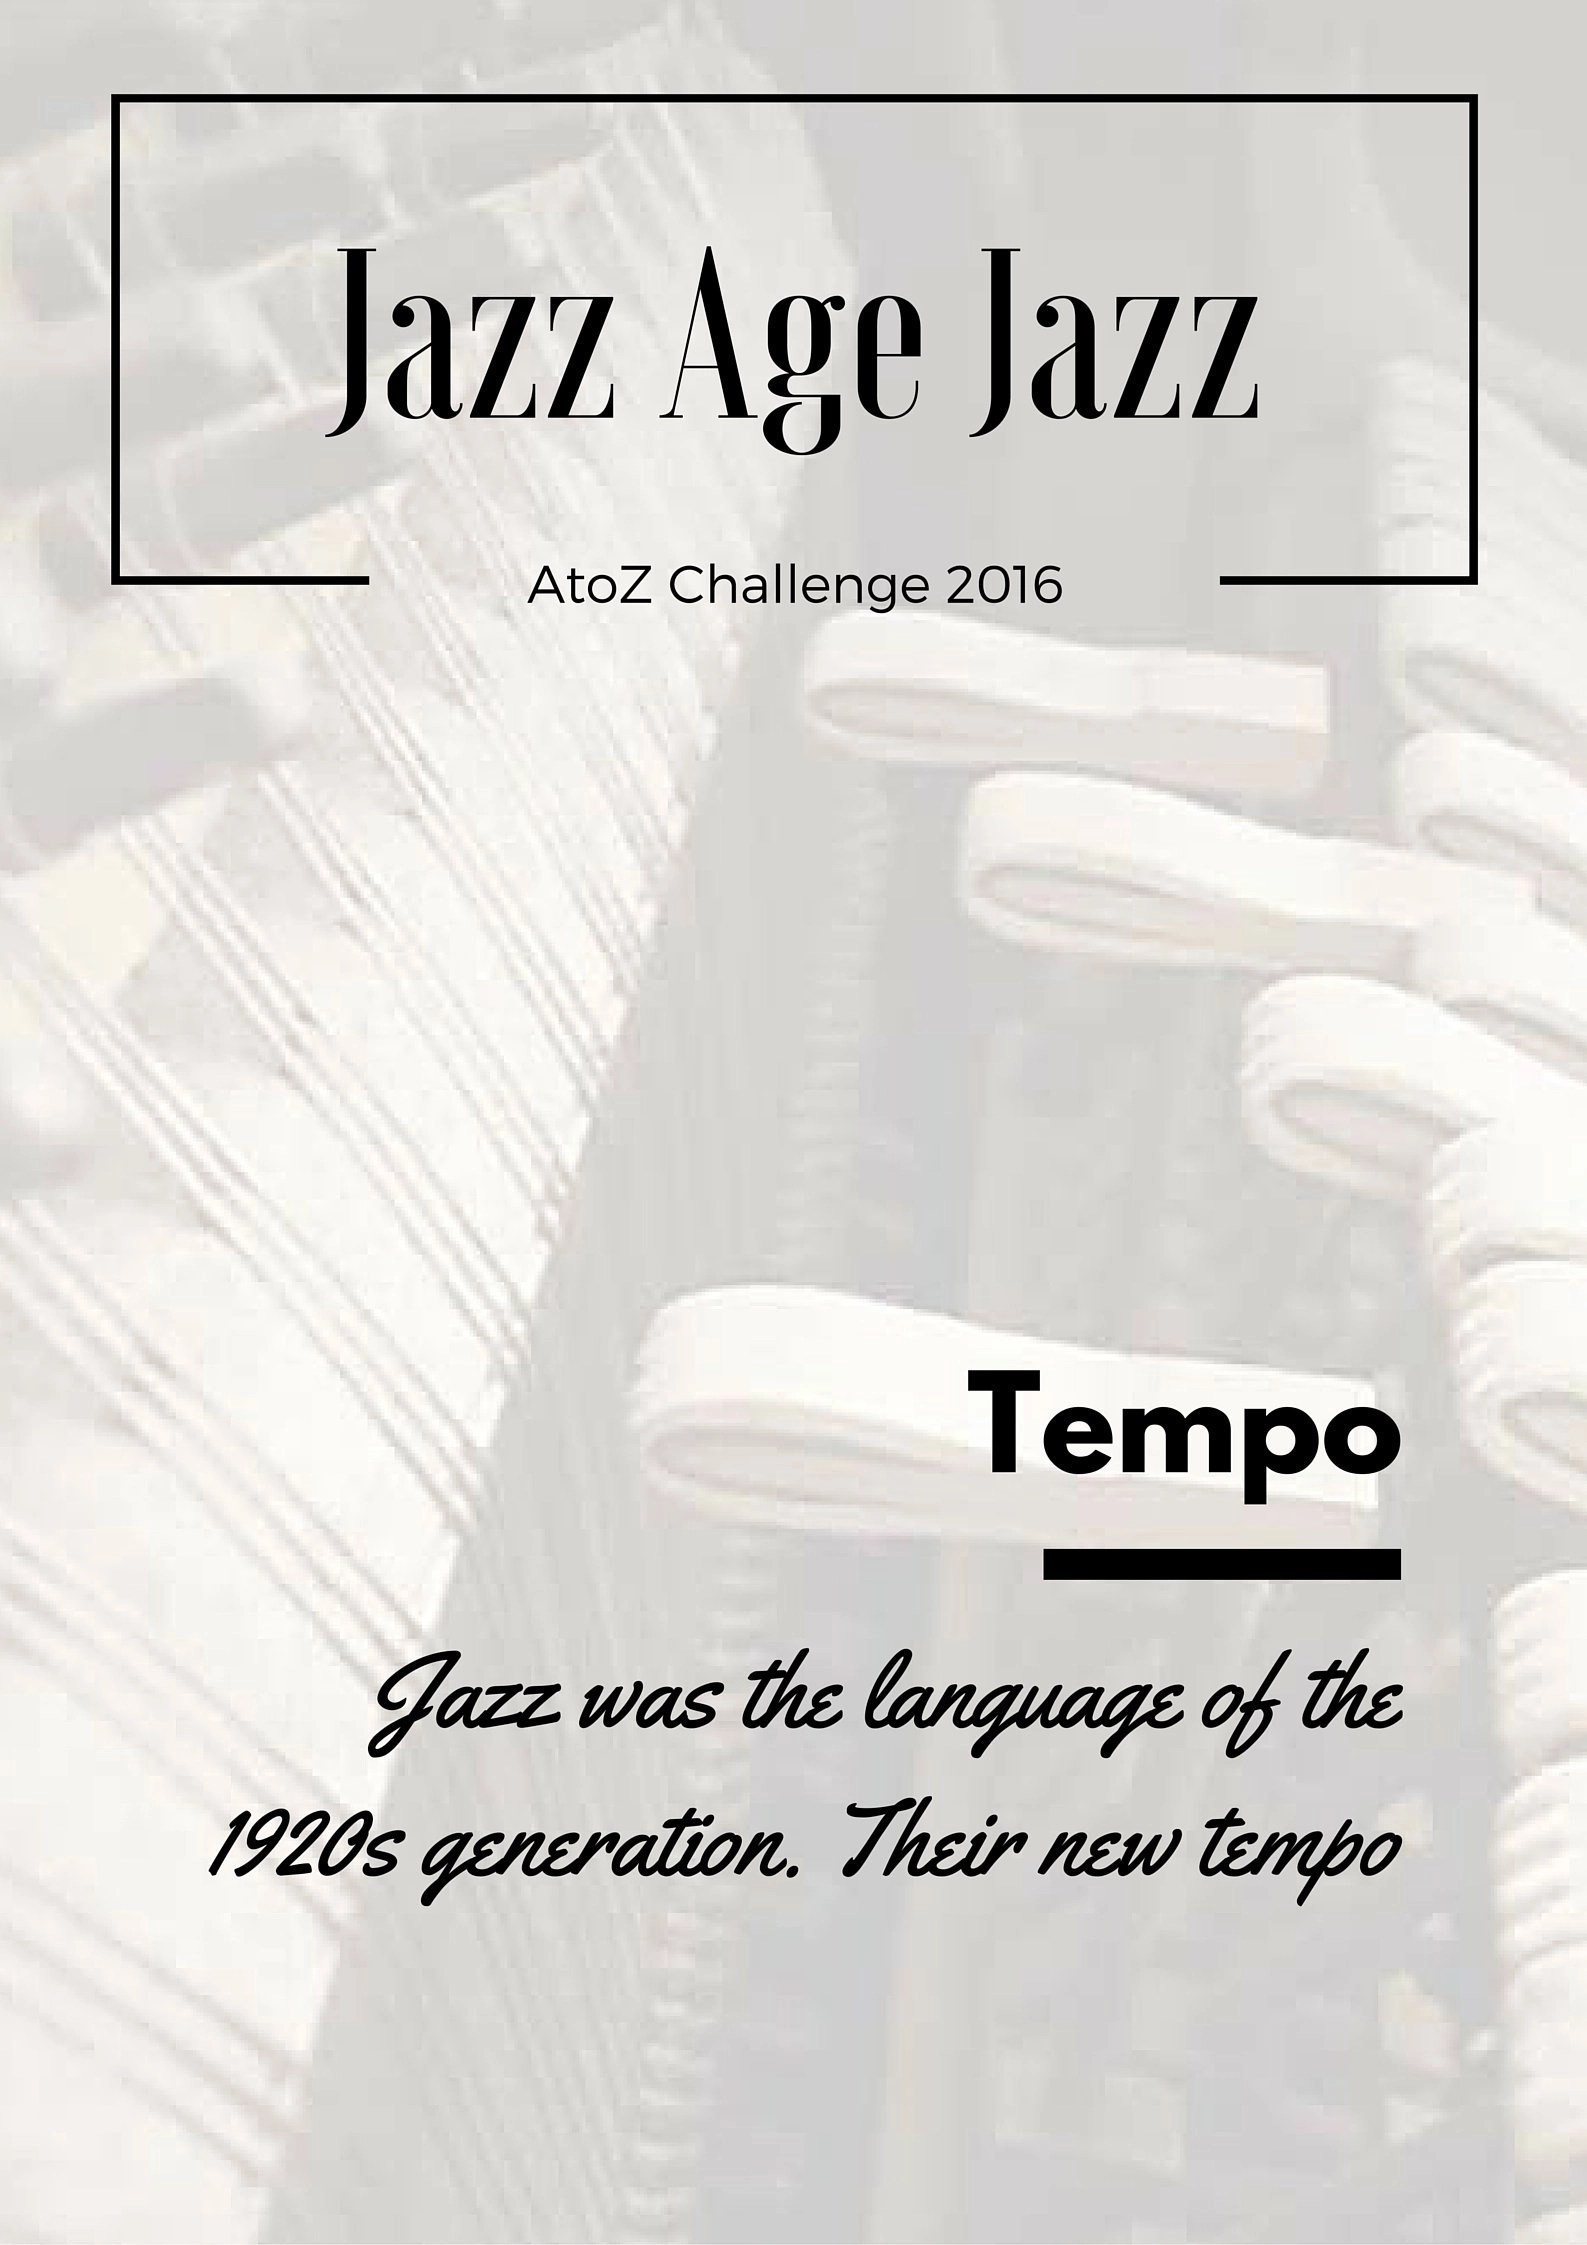 Jazz Age Jazz - Tempo: jazz was the language of the 1920s generation, their new tempo